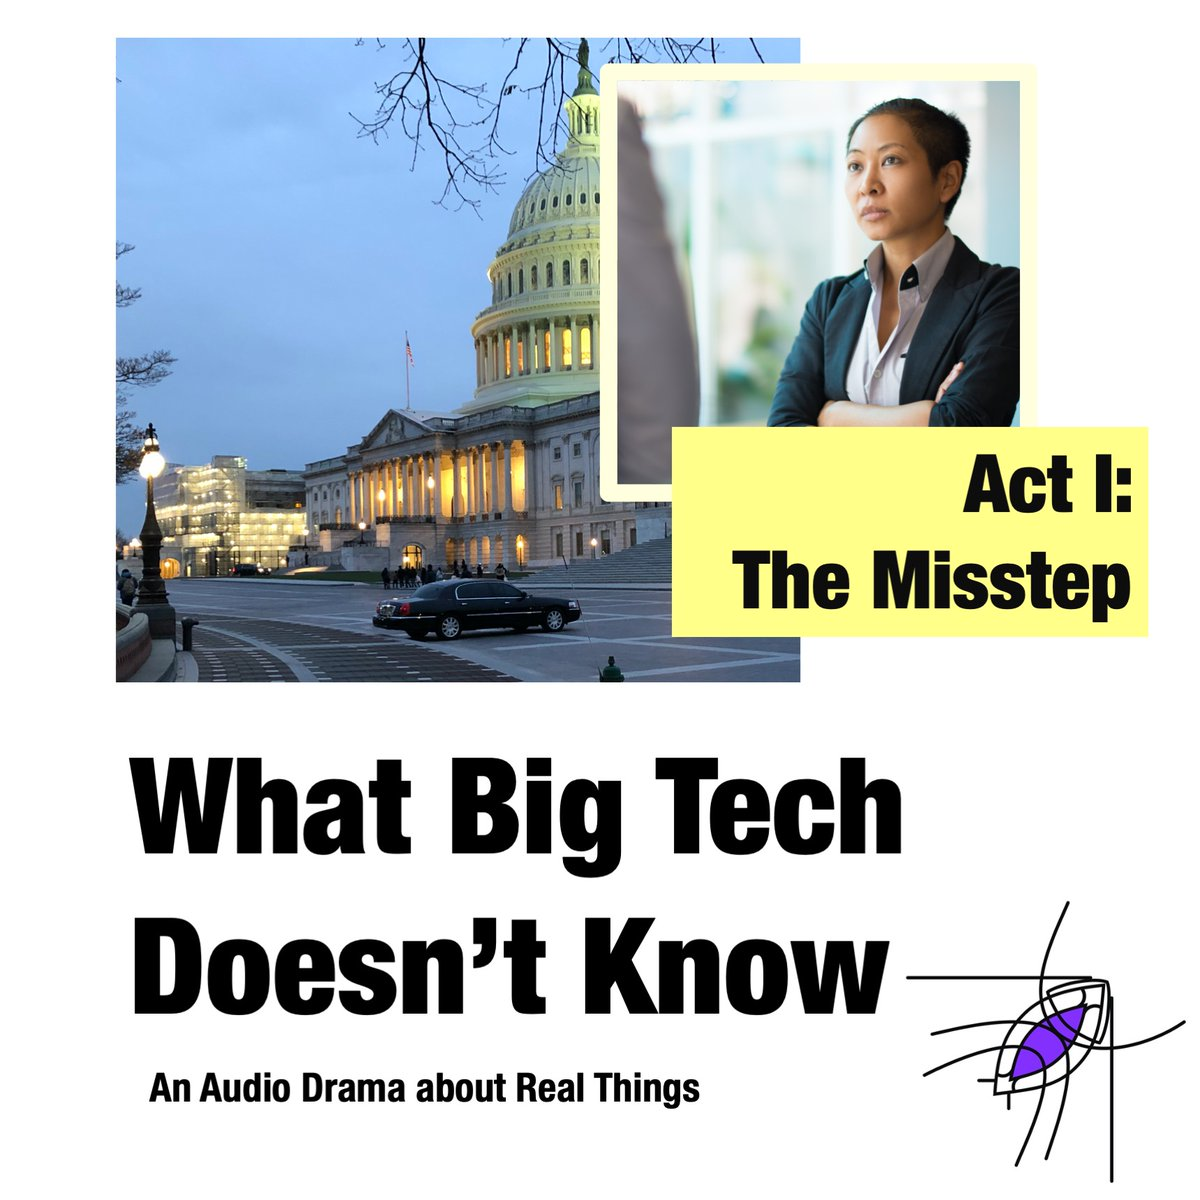 It's getting to the main point.  Tech is Politics.  Politics is Tech.  Before you start the last episodes, you might want to review the story.  Act I of What Big Tech Doesn't Know #audiodrama #WashingtonDC #bigtech https://t.co/pSpwdxvwX8 Act I: https://t.co/3aNE7oXcYh https://t.co/e8HdWyEzYE